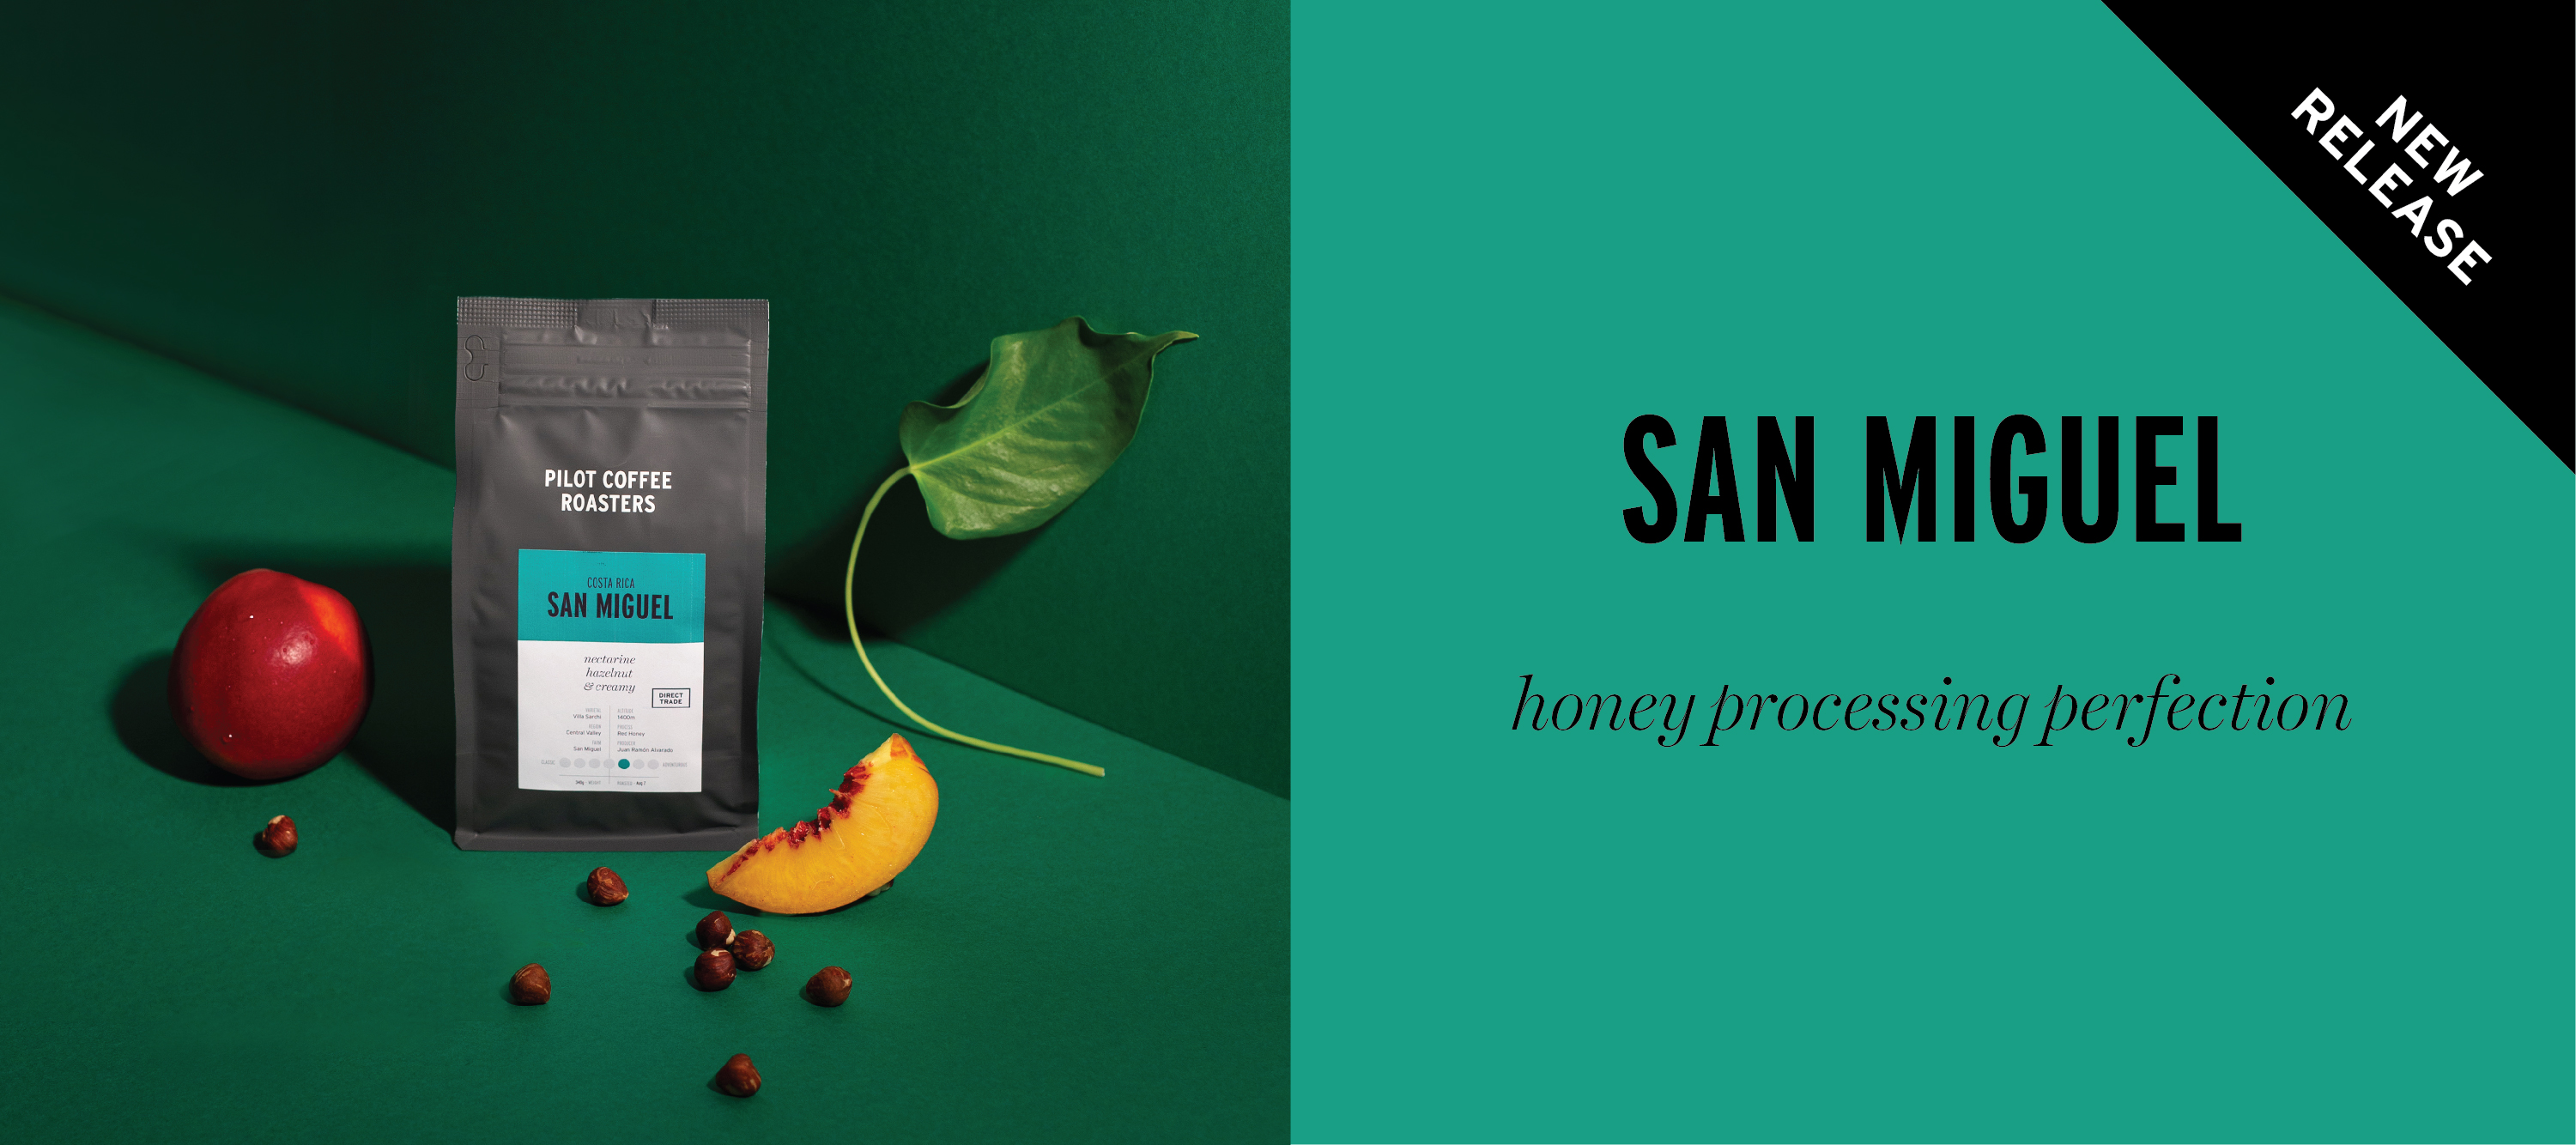 Our latest coffee release from Costa Rica, San Miguel has tasting notes of Hazelnut and nectarine